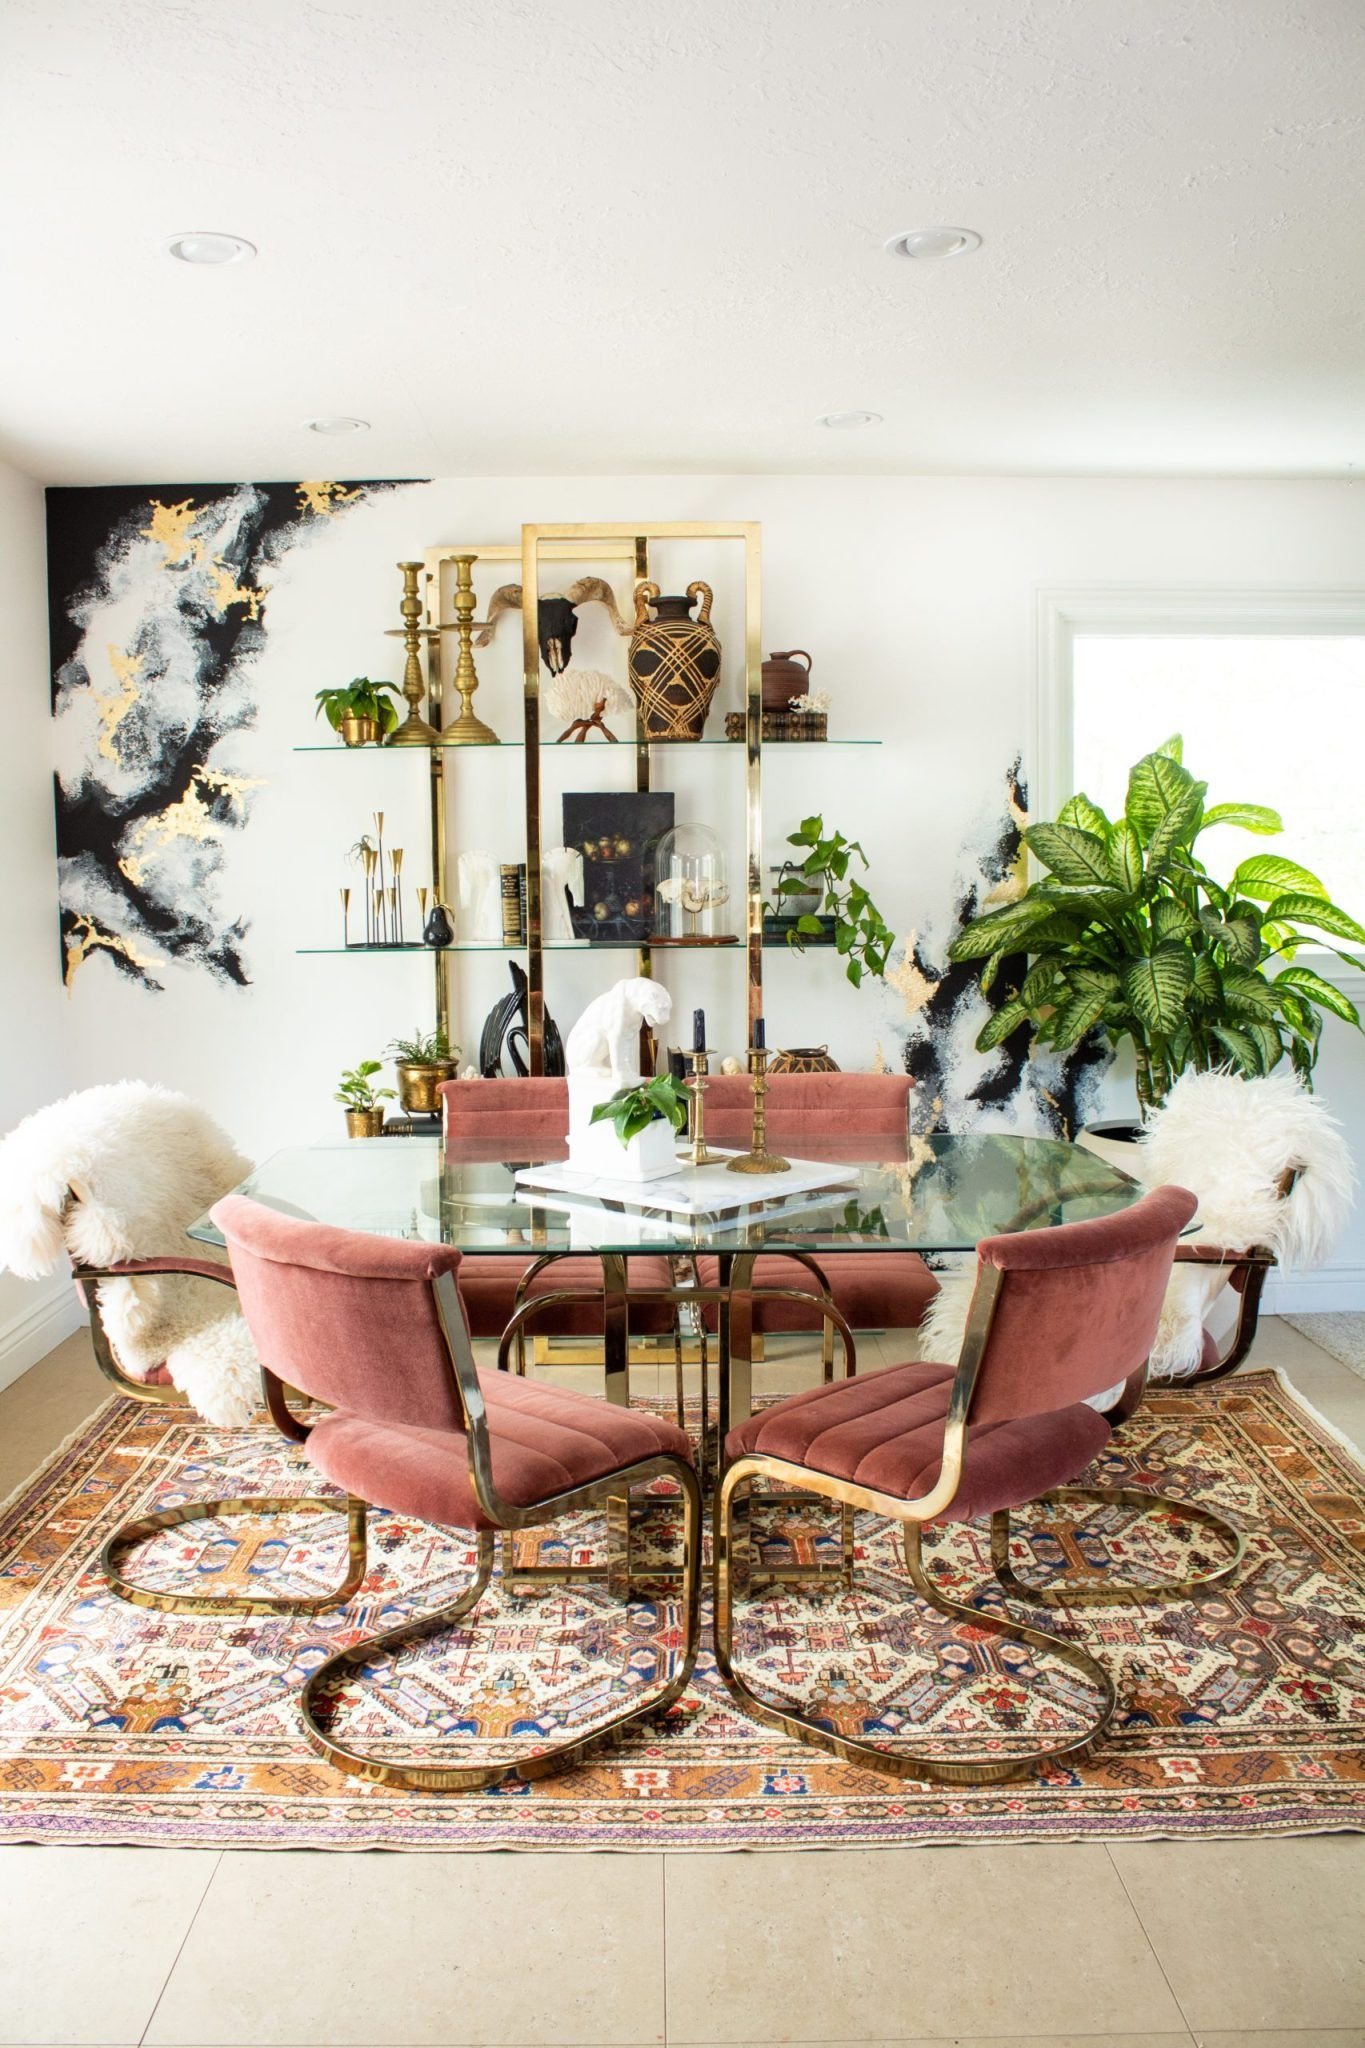 How A Rug Makes A Room Ms Vicious Design Dining Room Rug Rug Dining Room Rug Making Ms living room rugs